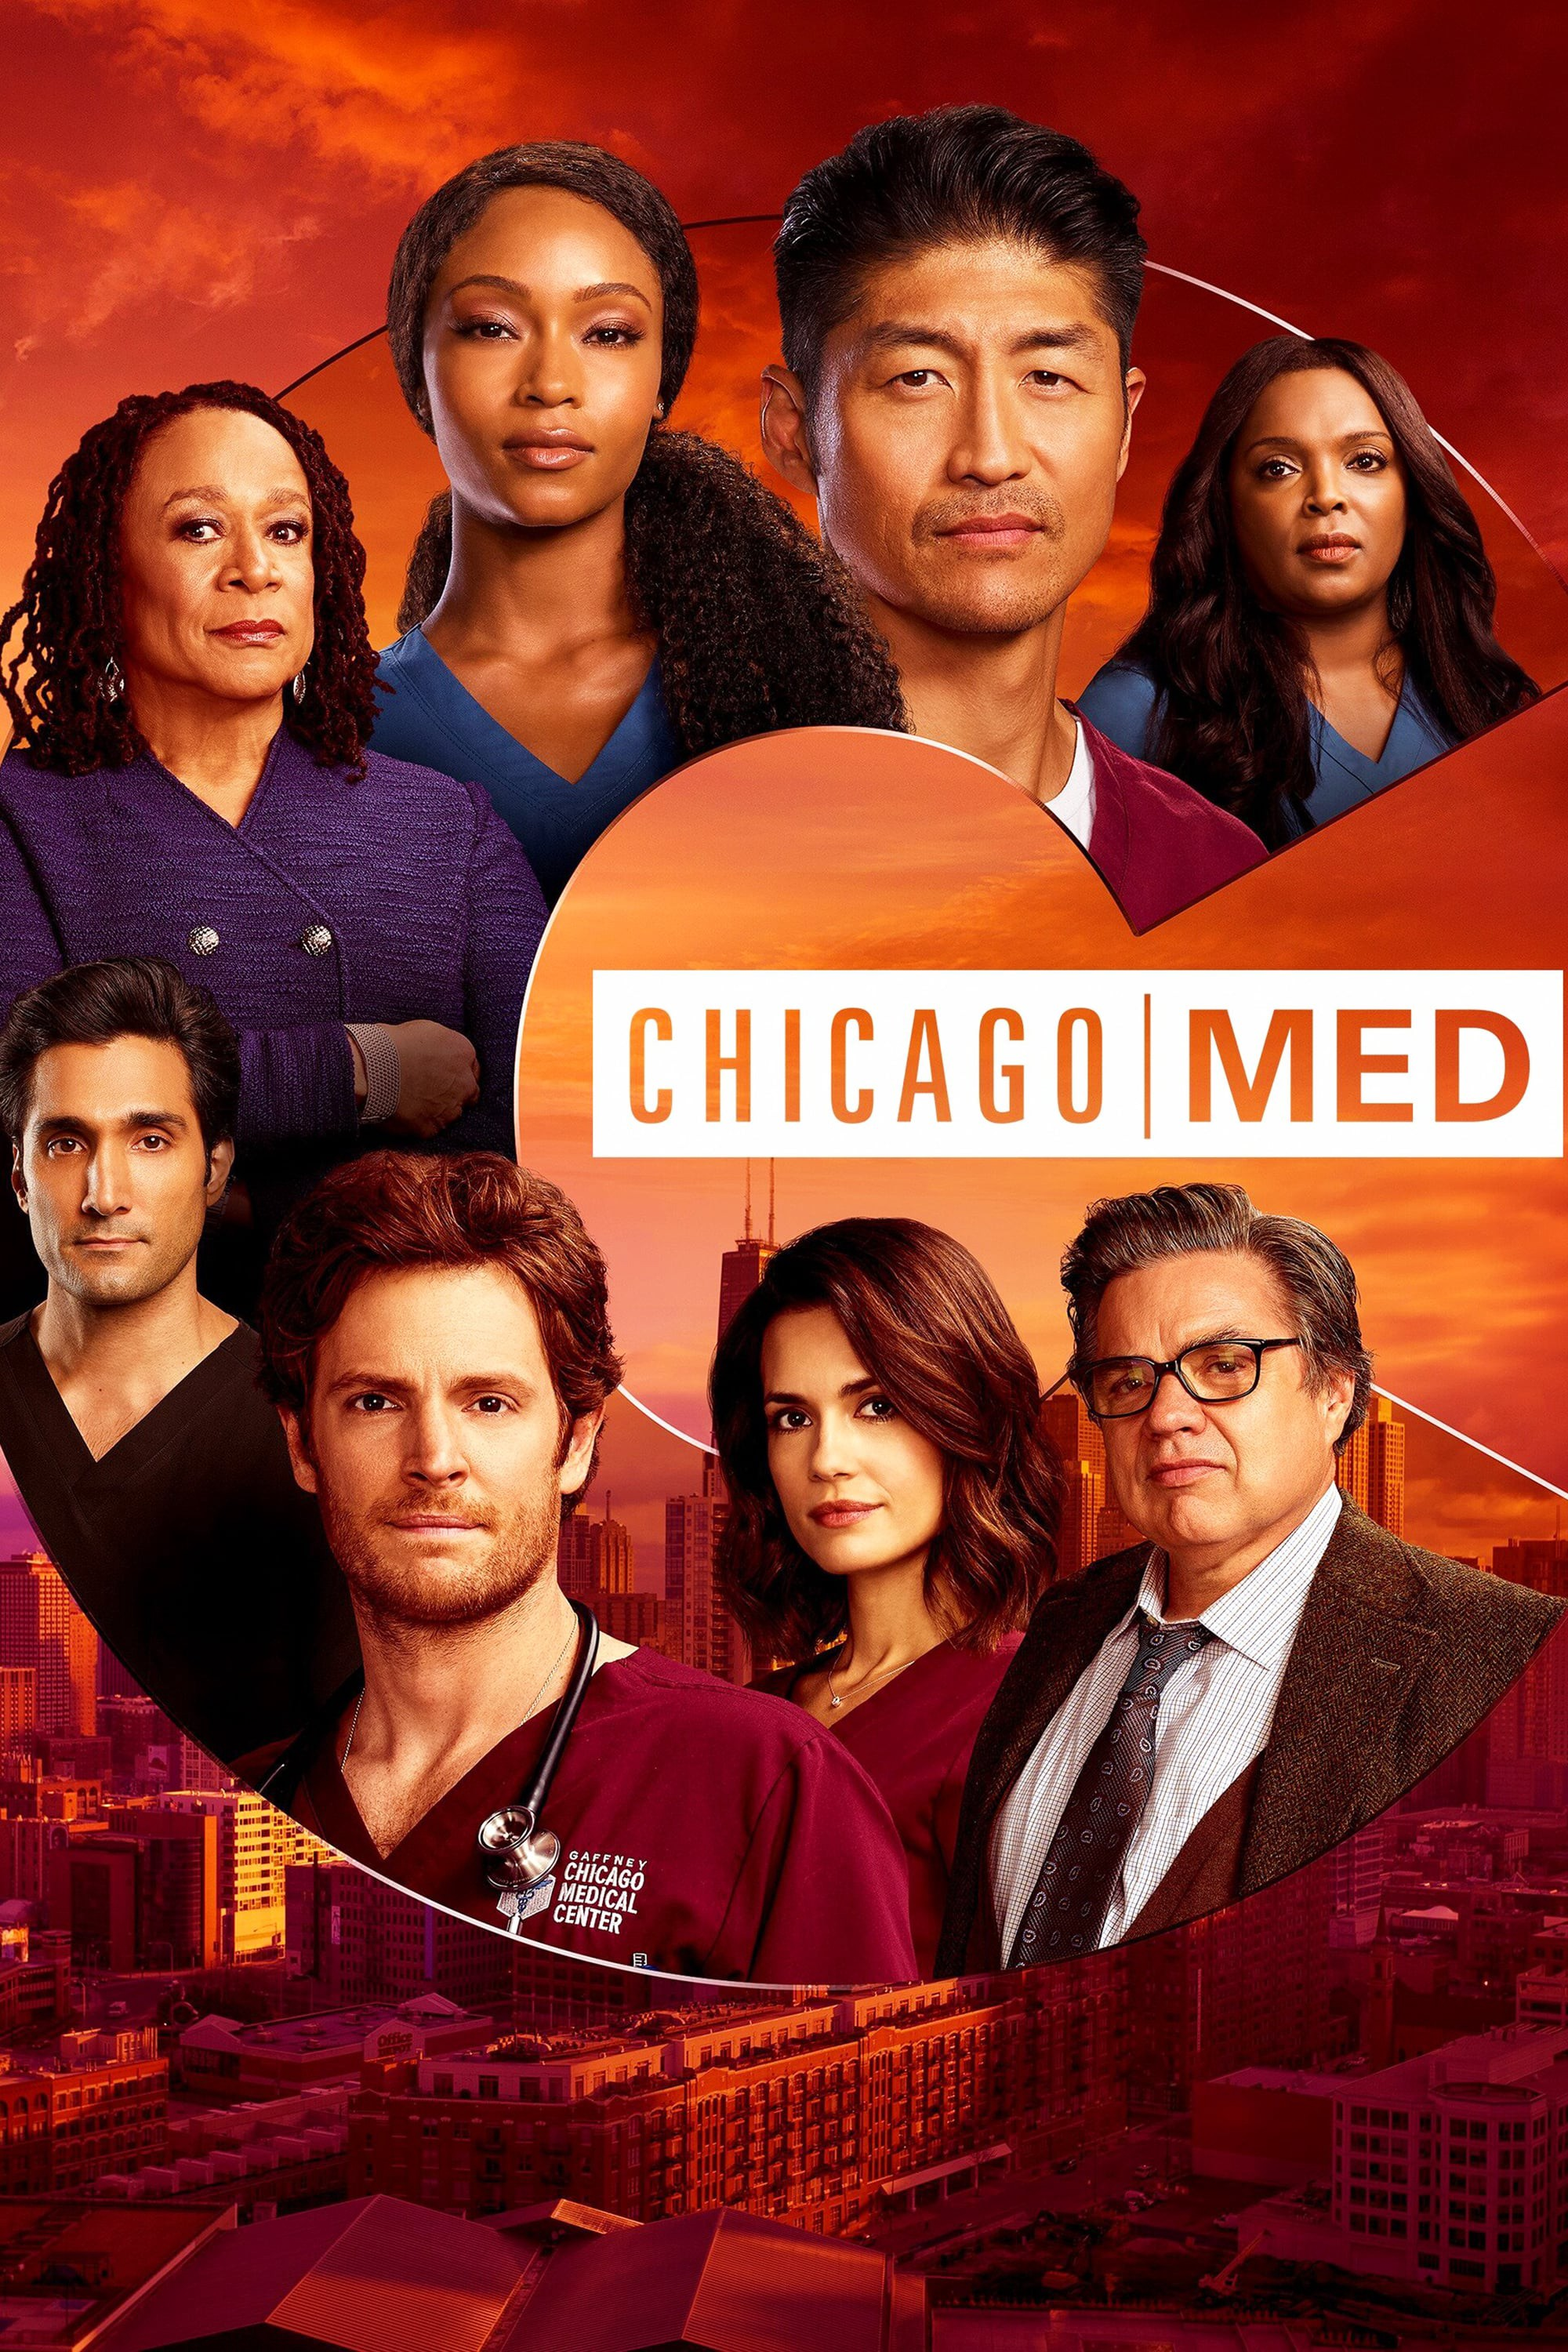 Chicago Med Season 6 Episode 3 - Do You Know the Way Home?